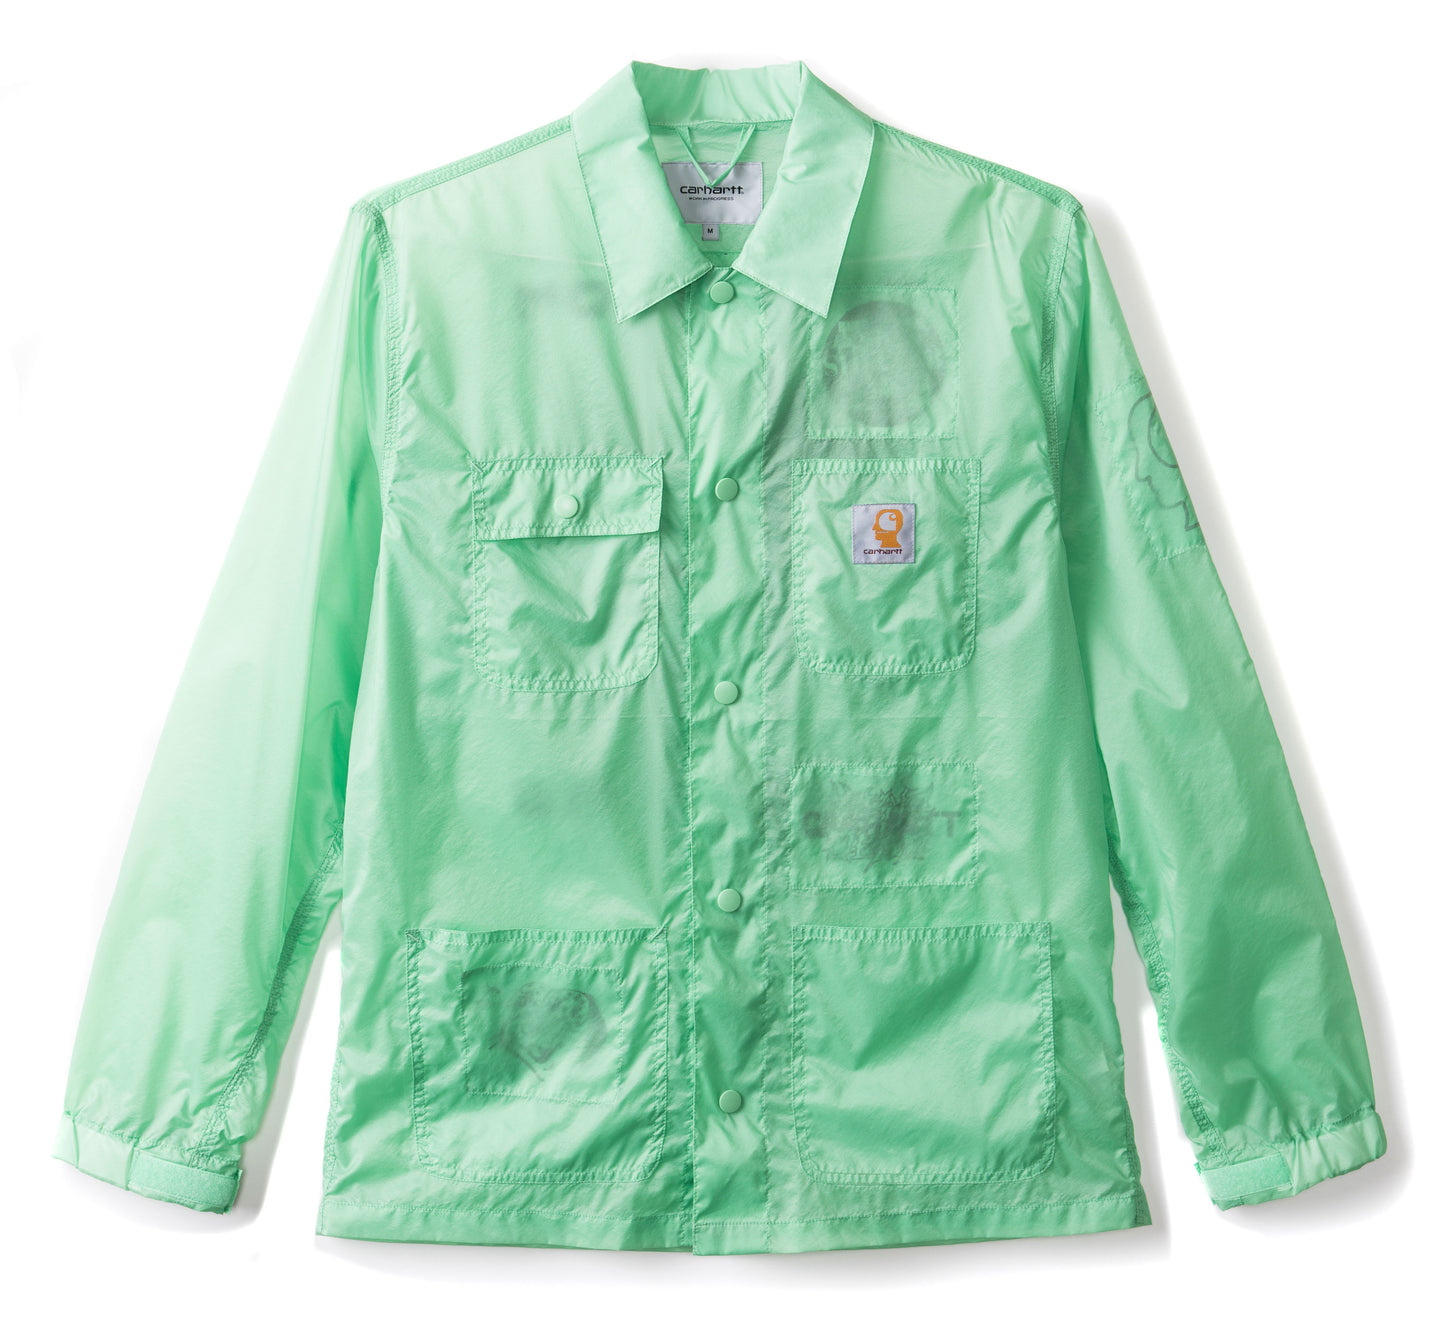 Brain Dead x Carhartt Chore Coat - Green